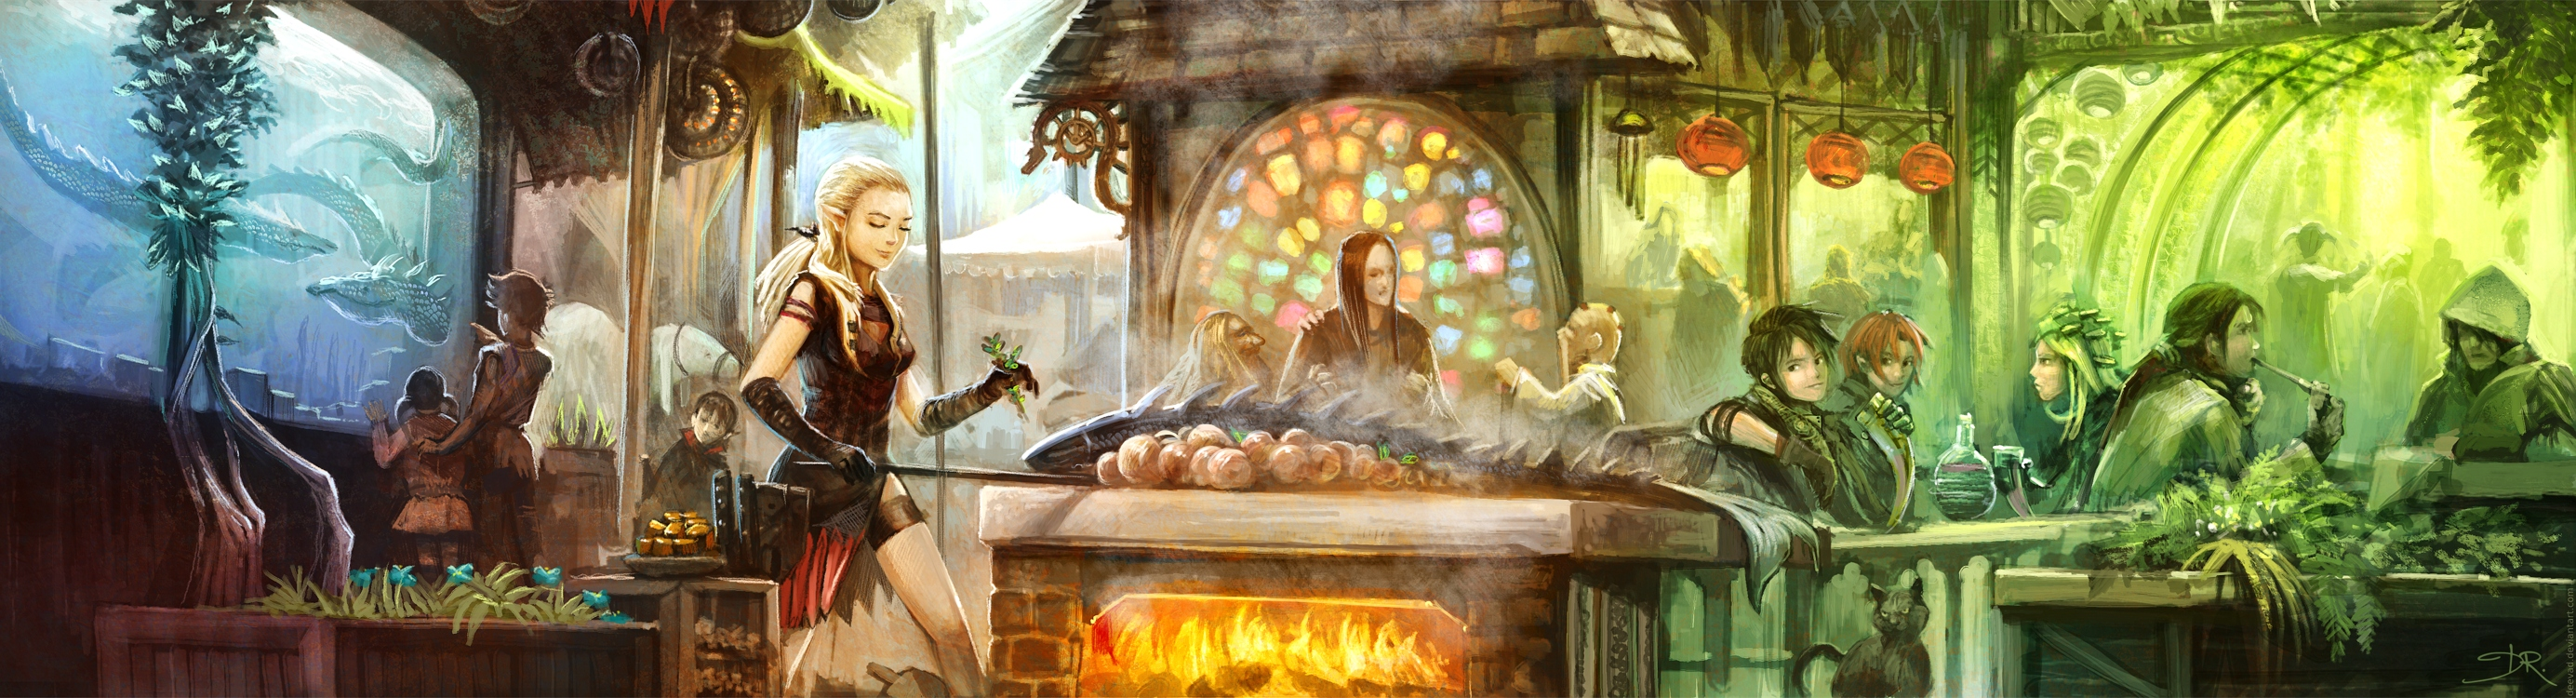 Water-Dragons cooking place